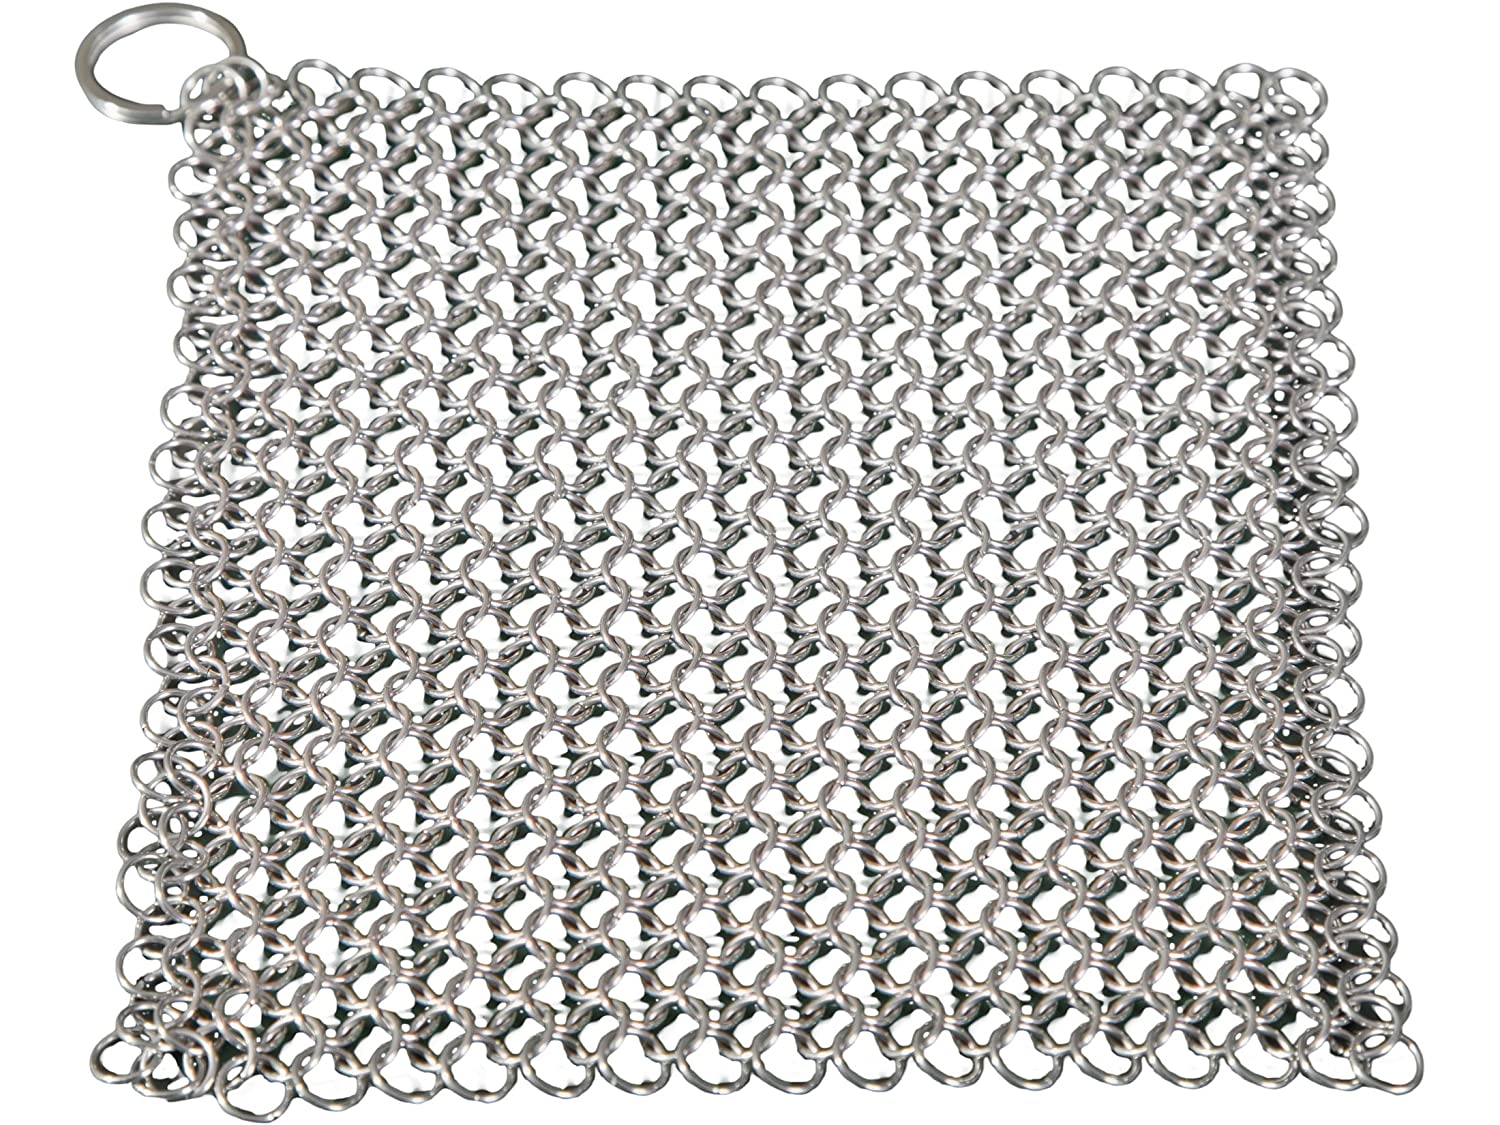 Camp Chef Chainmail Cast Iron Scrubber B07B7BKZWG